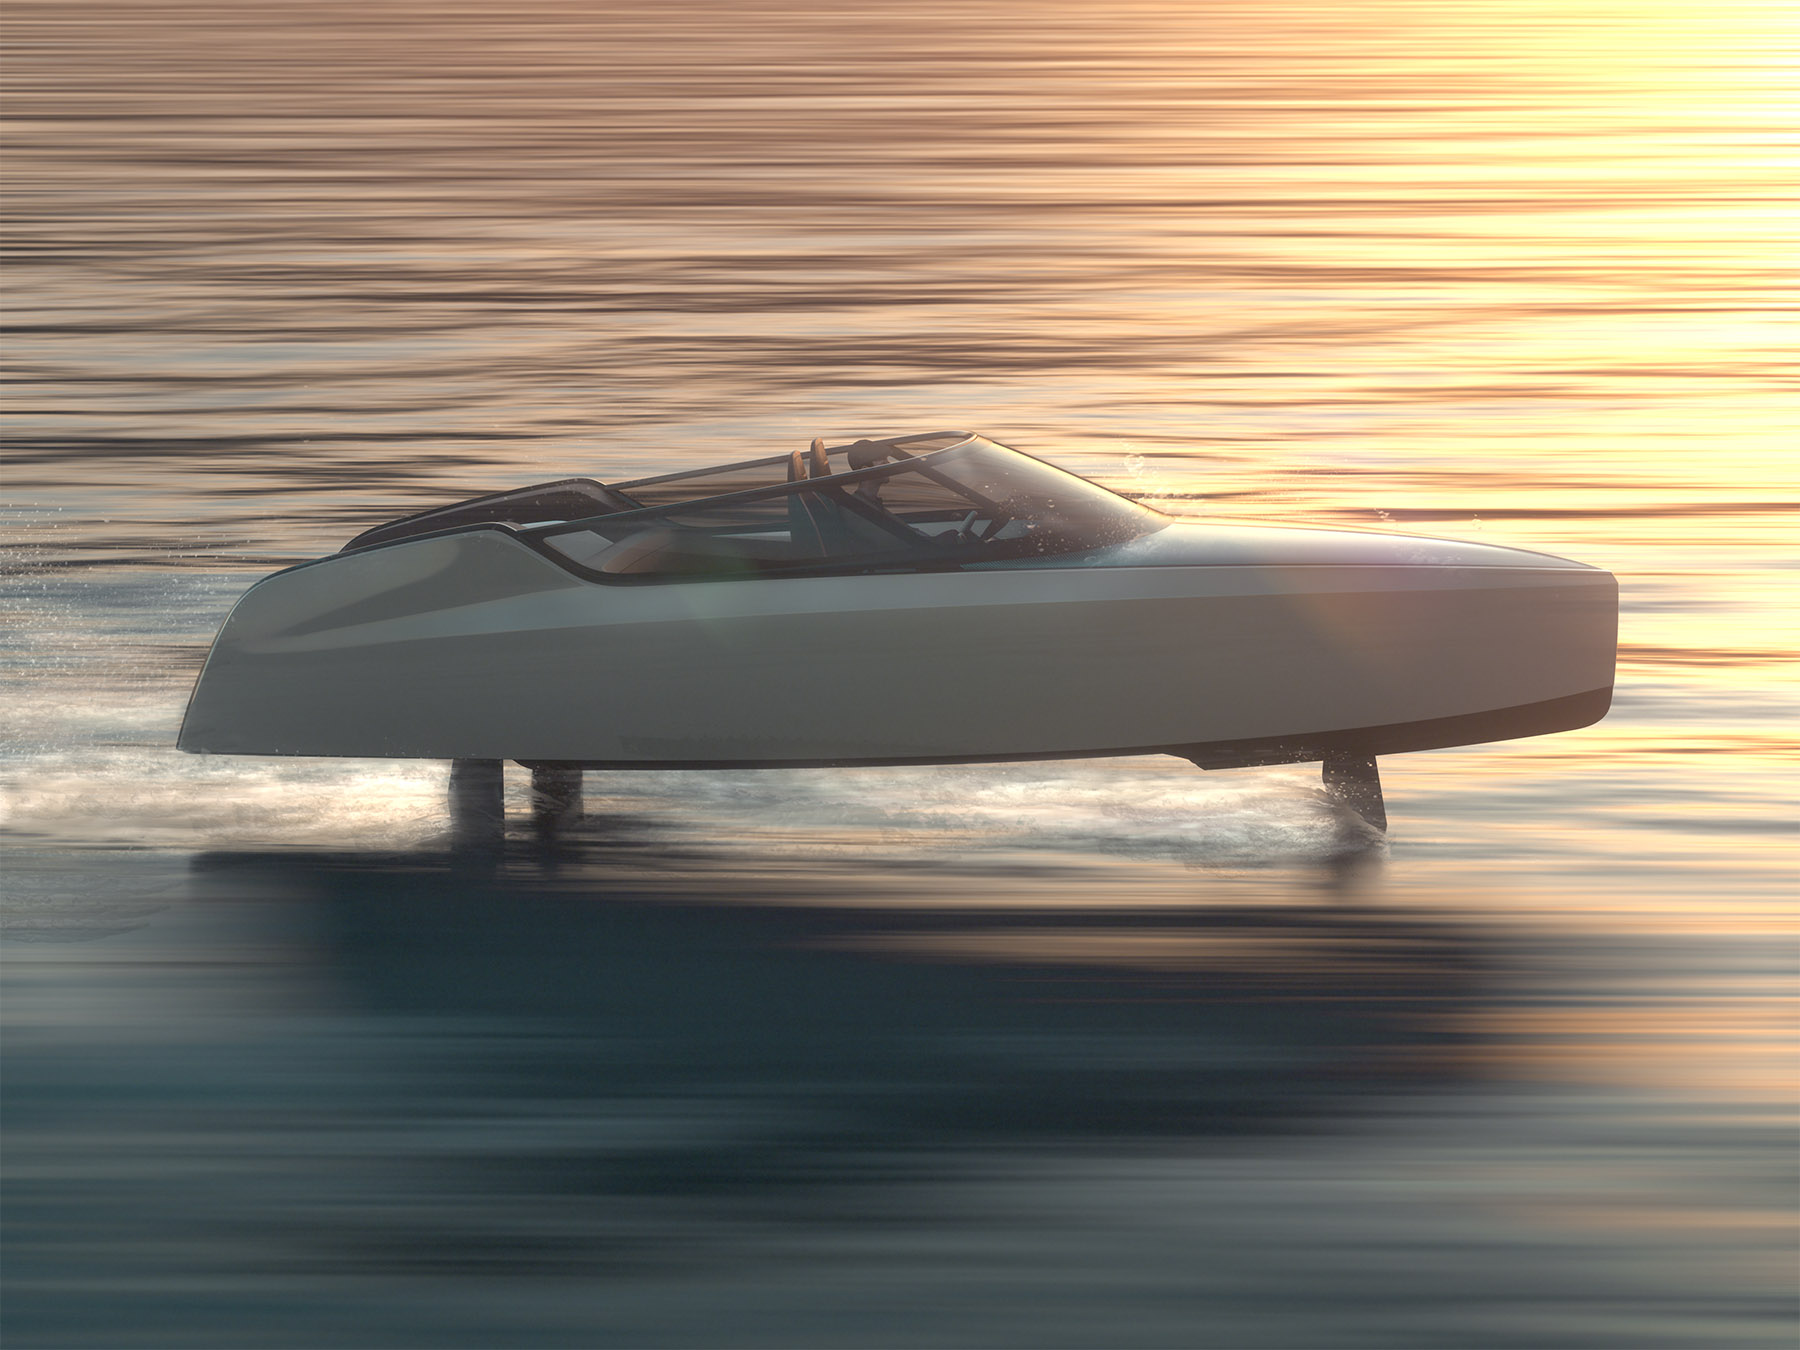 A rendering of the Edorado 8S in hydrofoil mode – a working prototype was unveiled this month